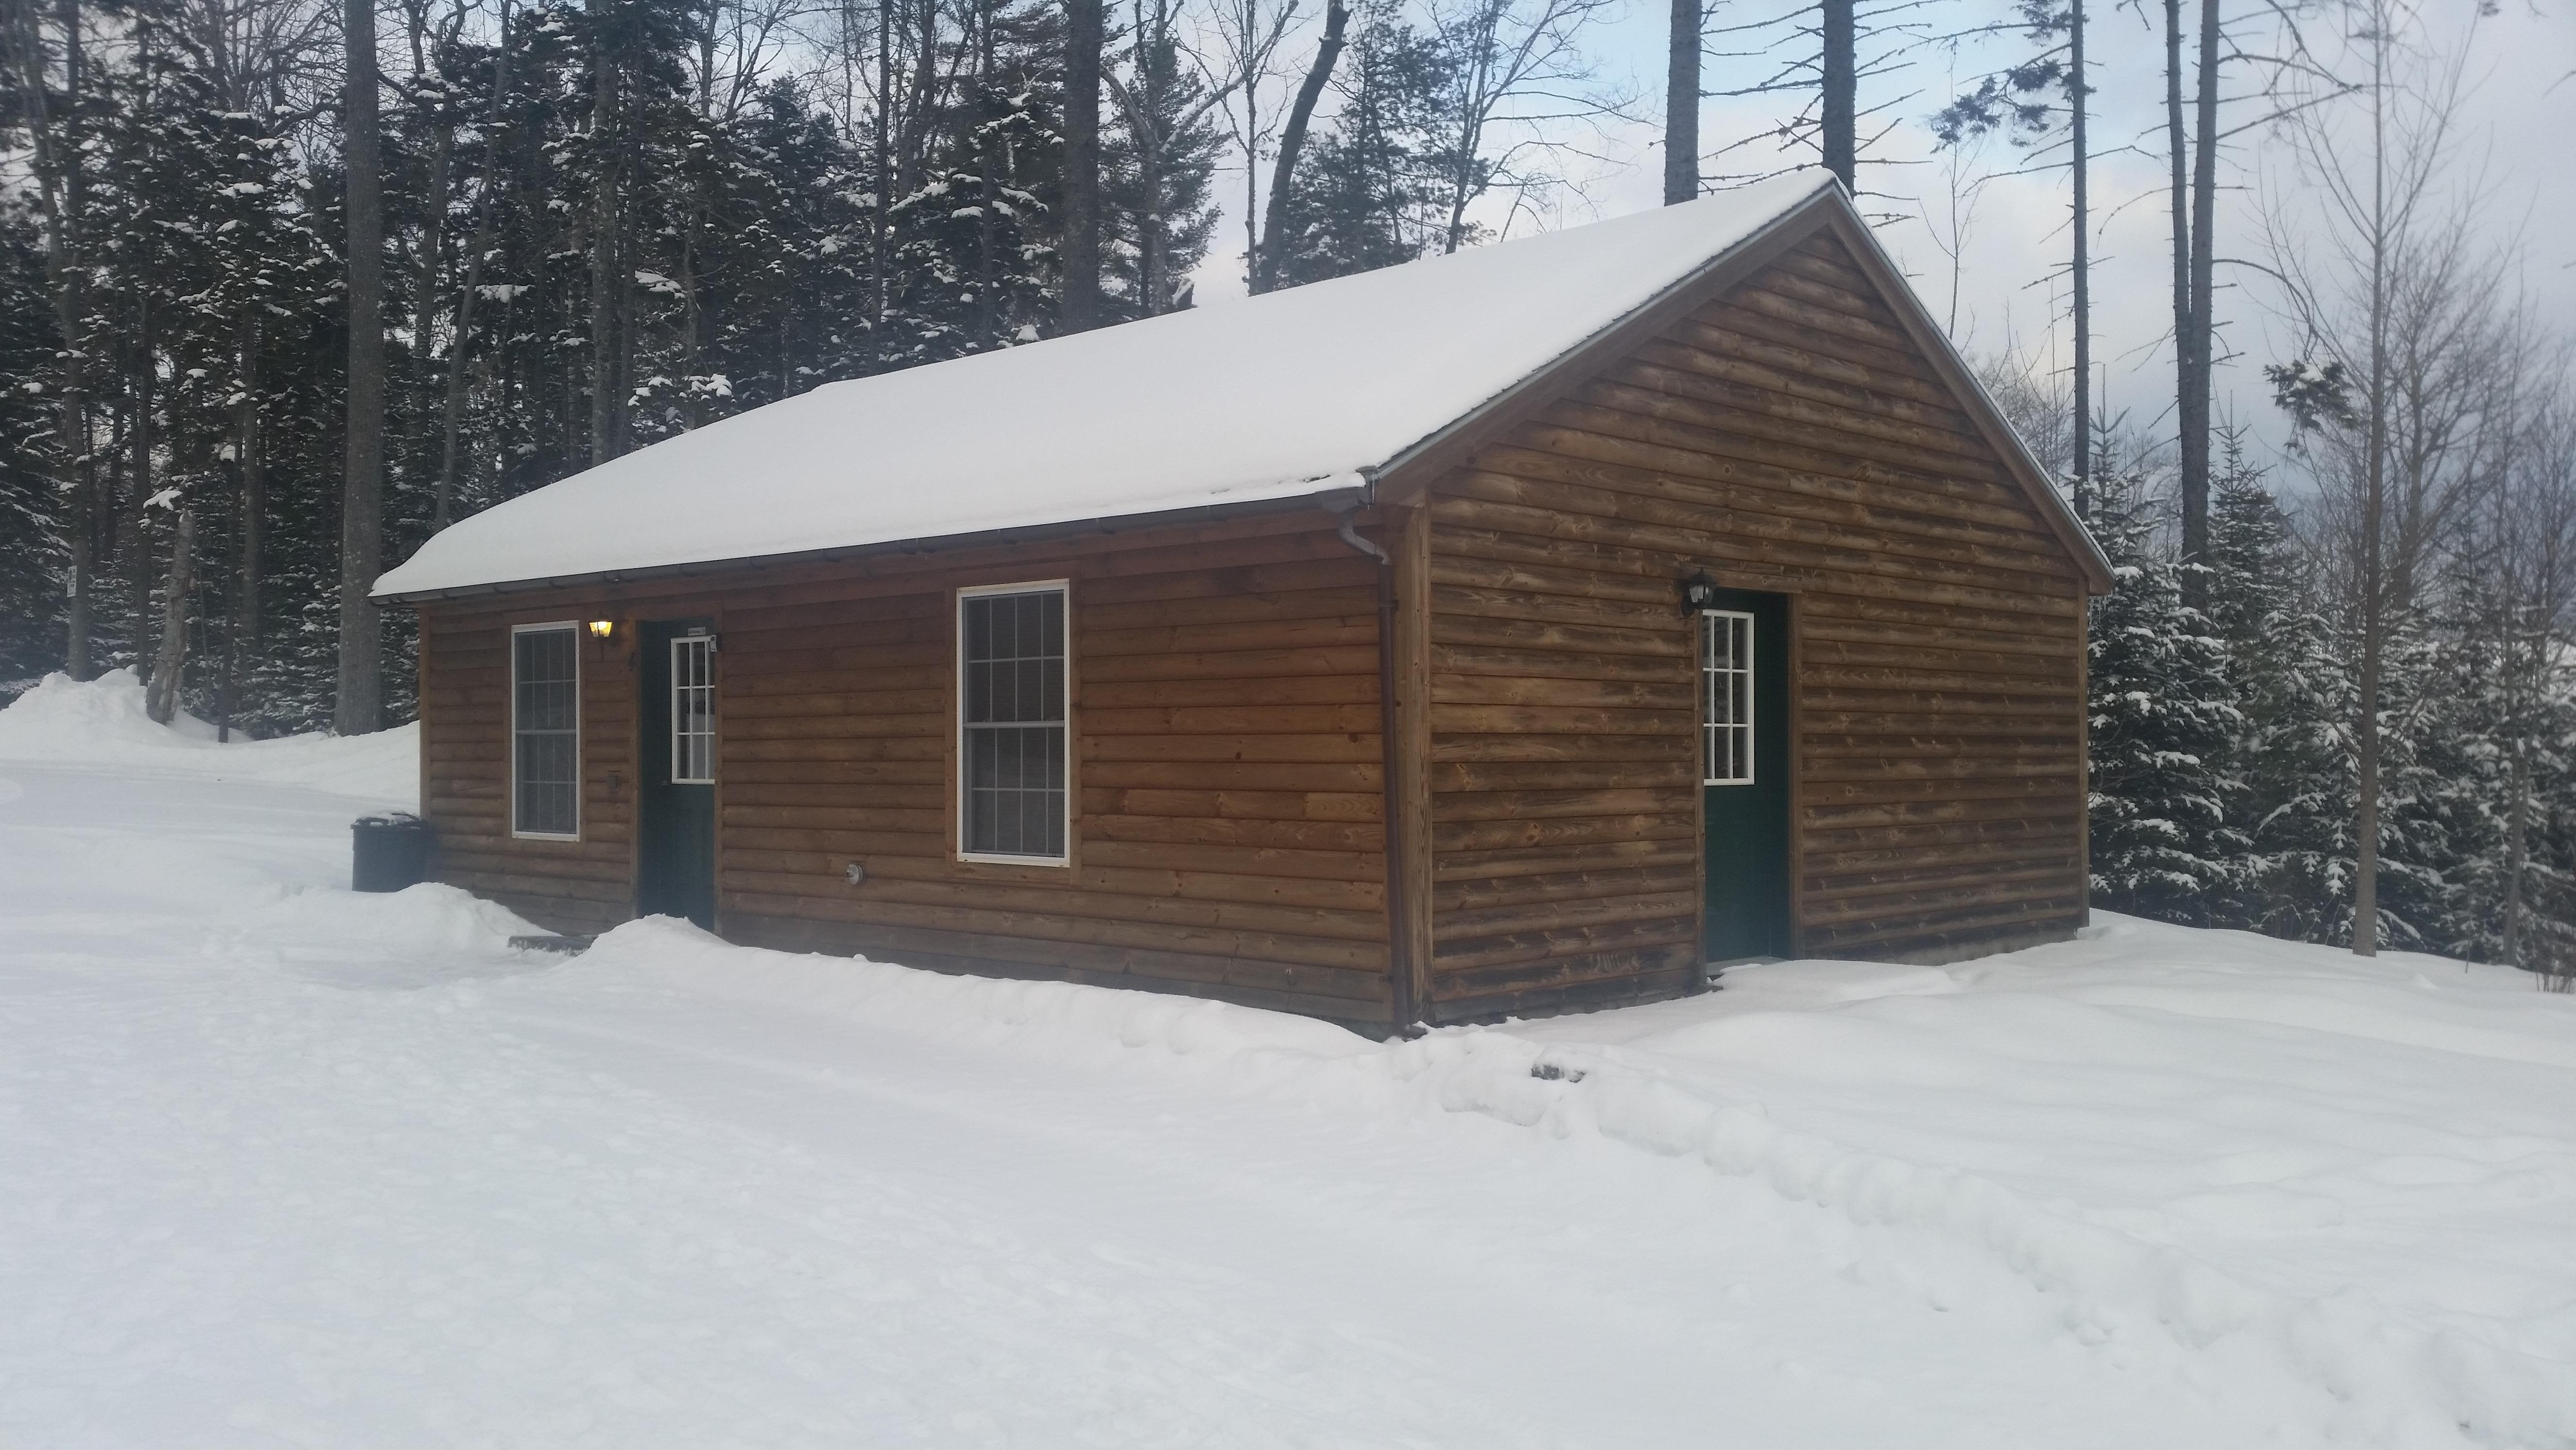 The Black Bear Cabins image 1